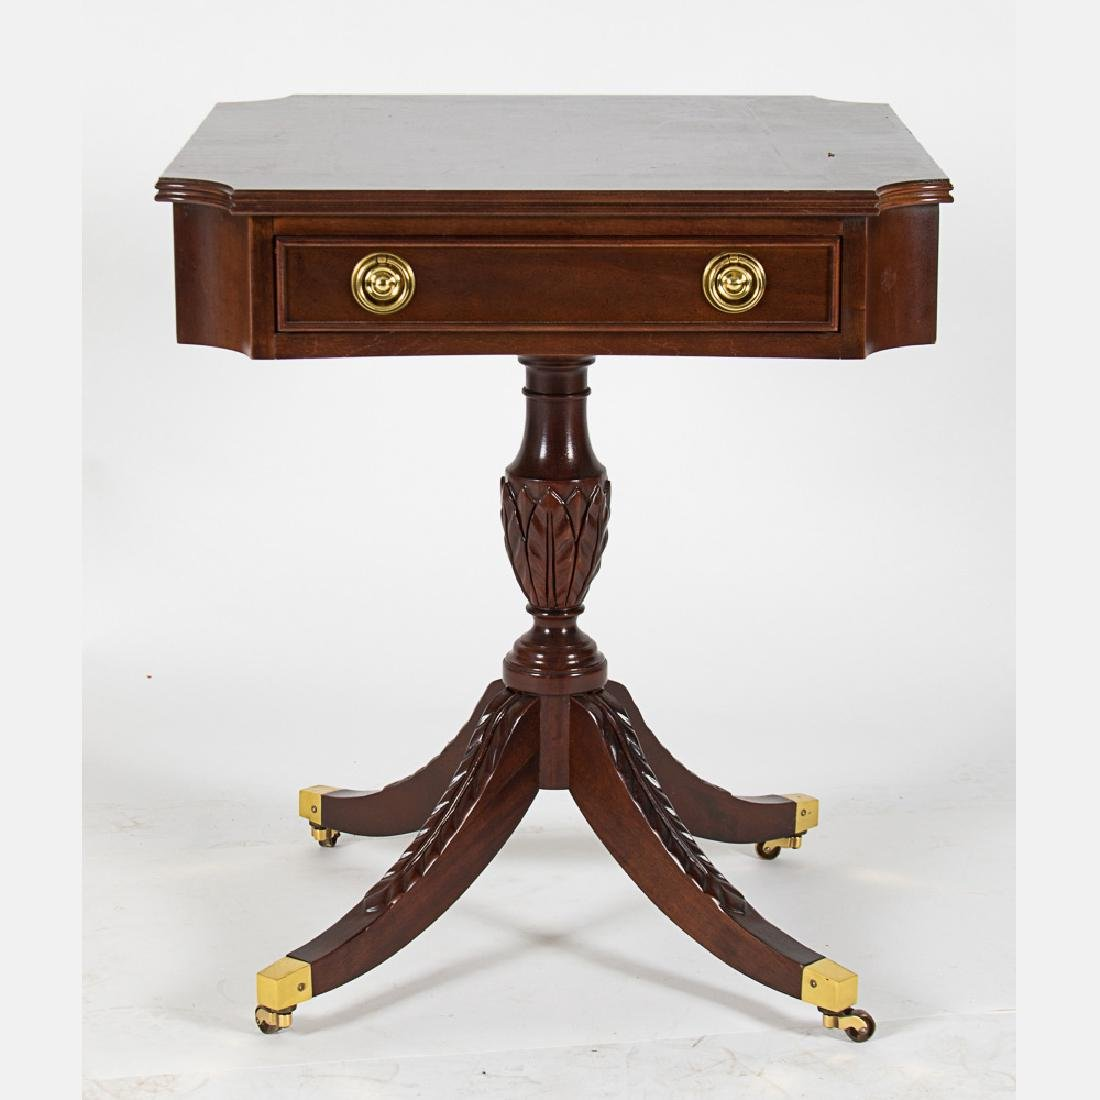 A Regency Style Mahogany Side Table with Single Drawer